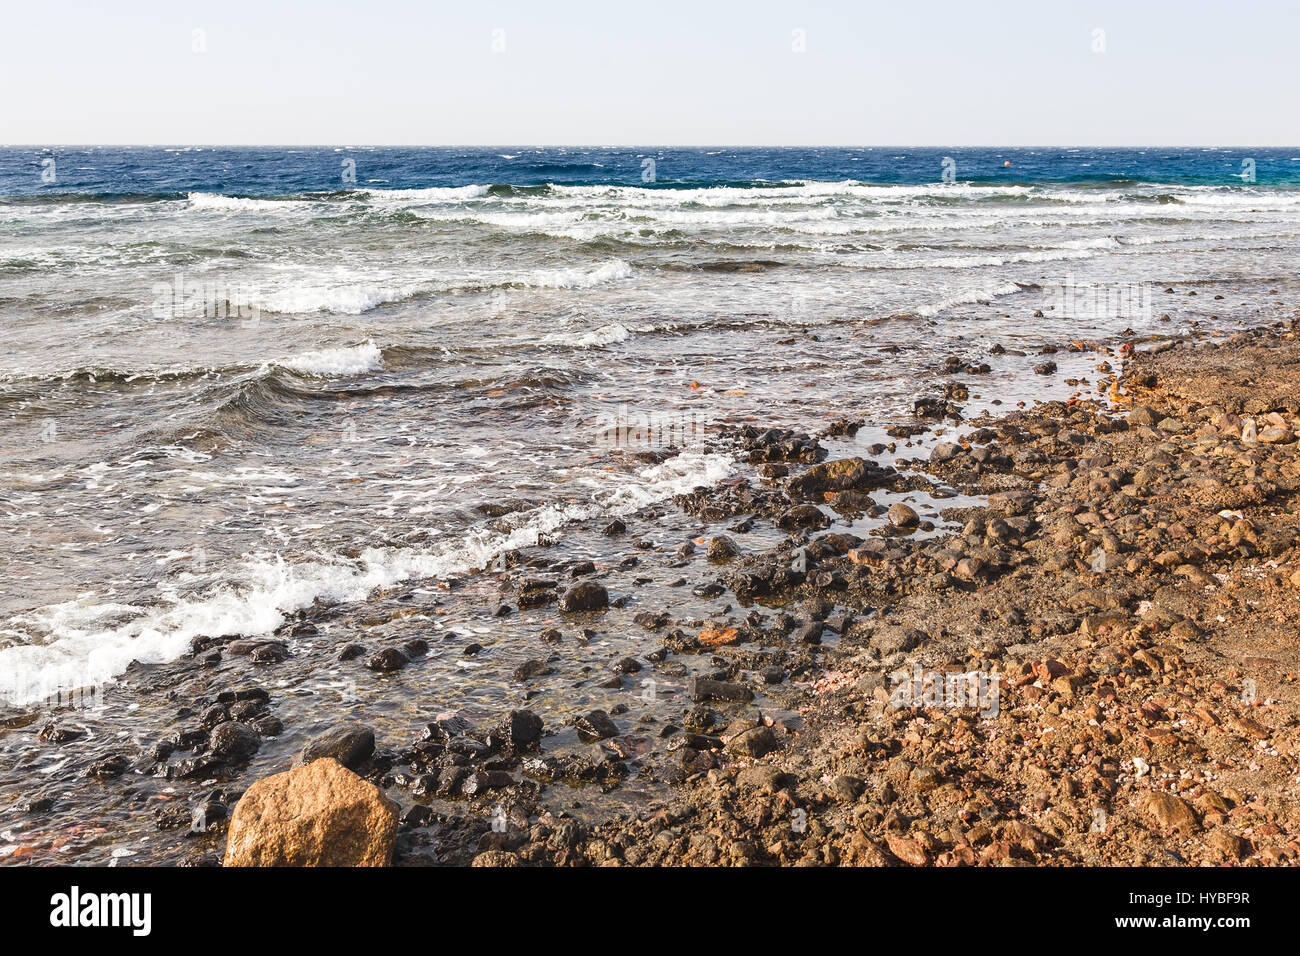 Travel to Middle East country Kingdom of Jordan - dirty beach near Aqaba port on Red Sea in winter - Stock Image